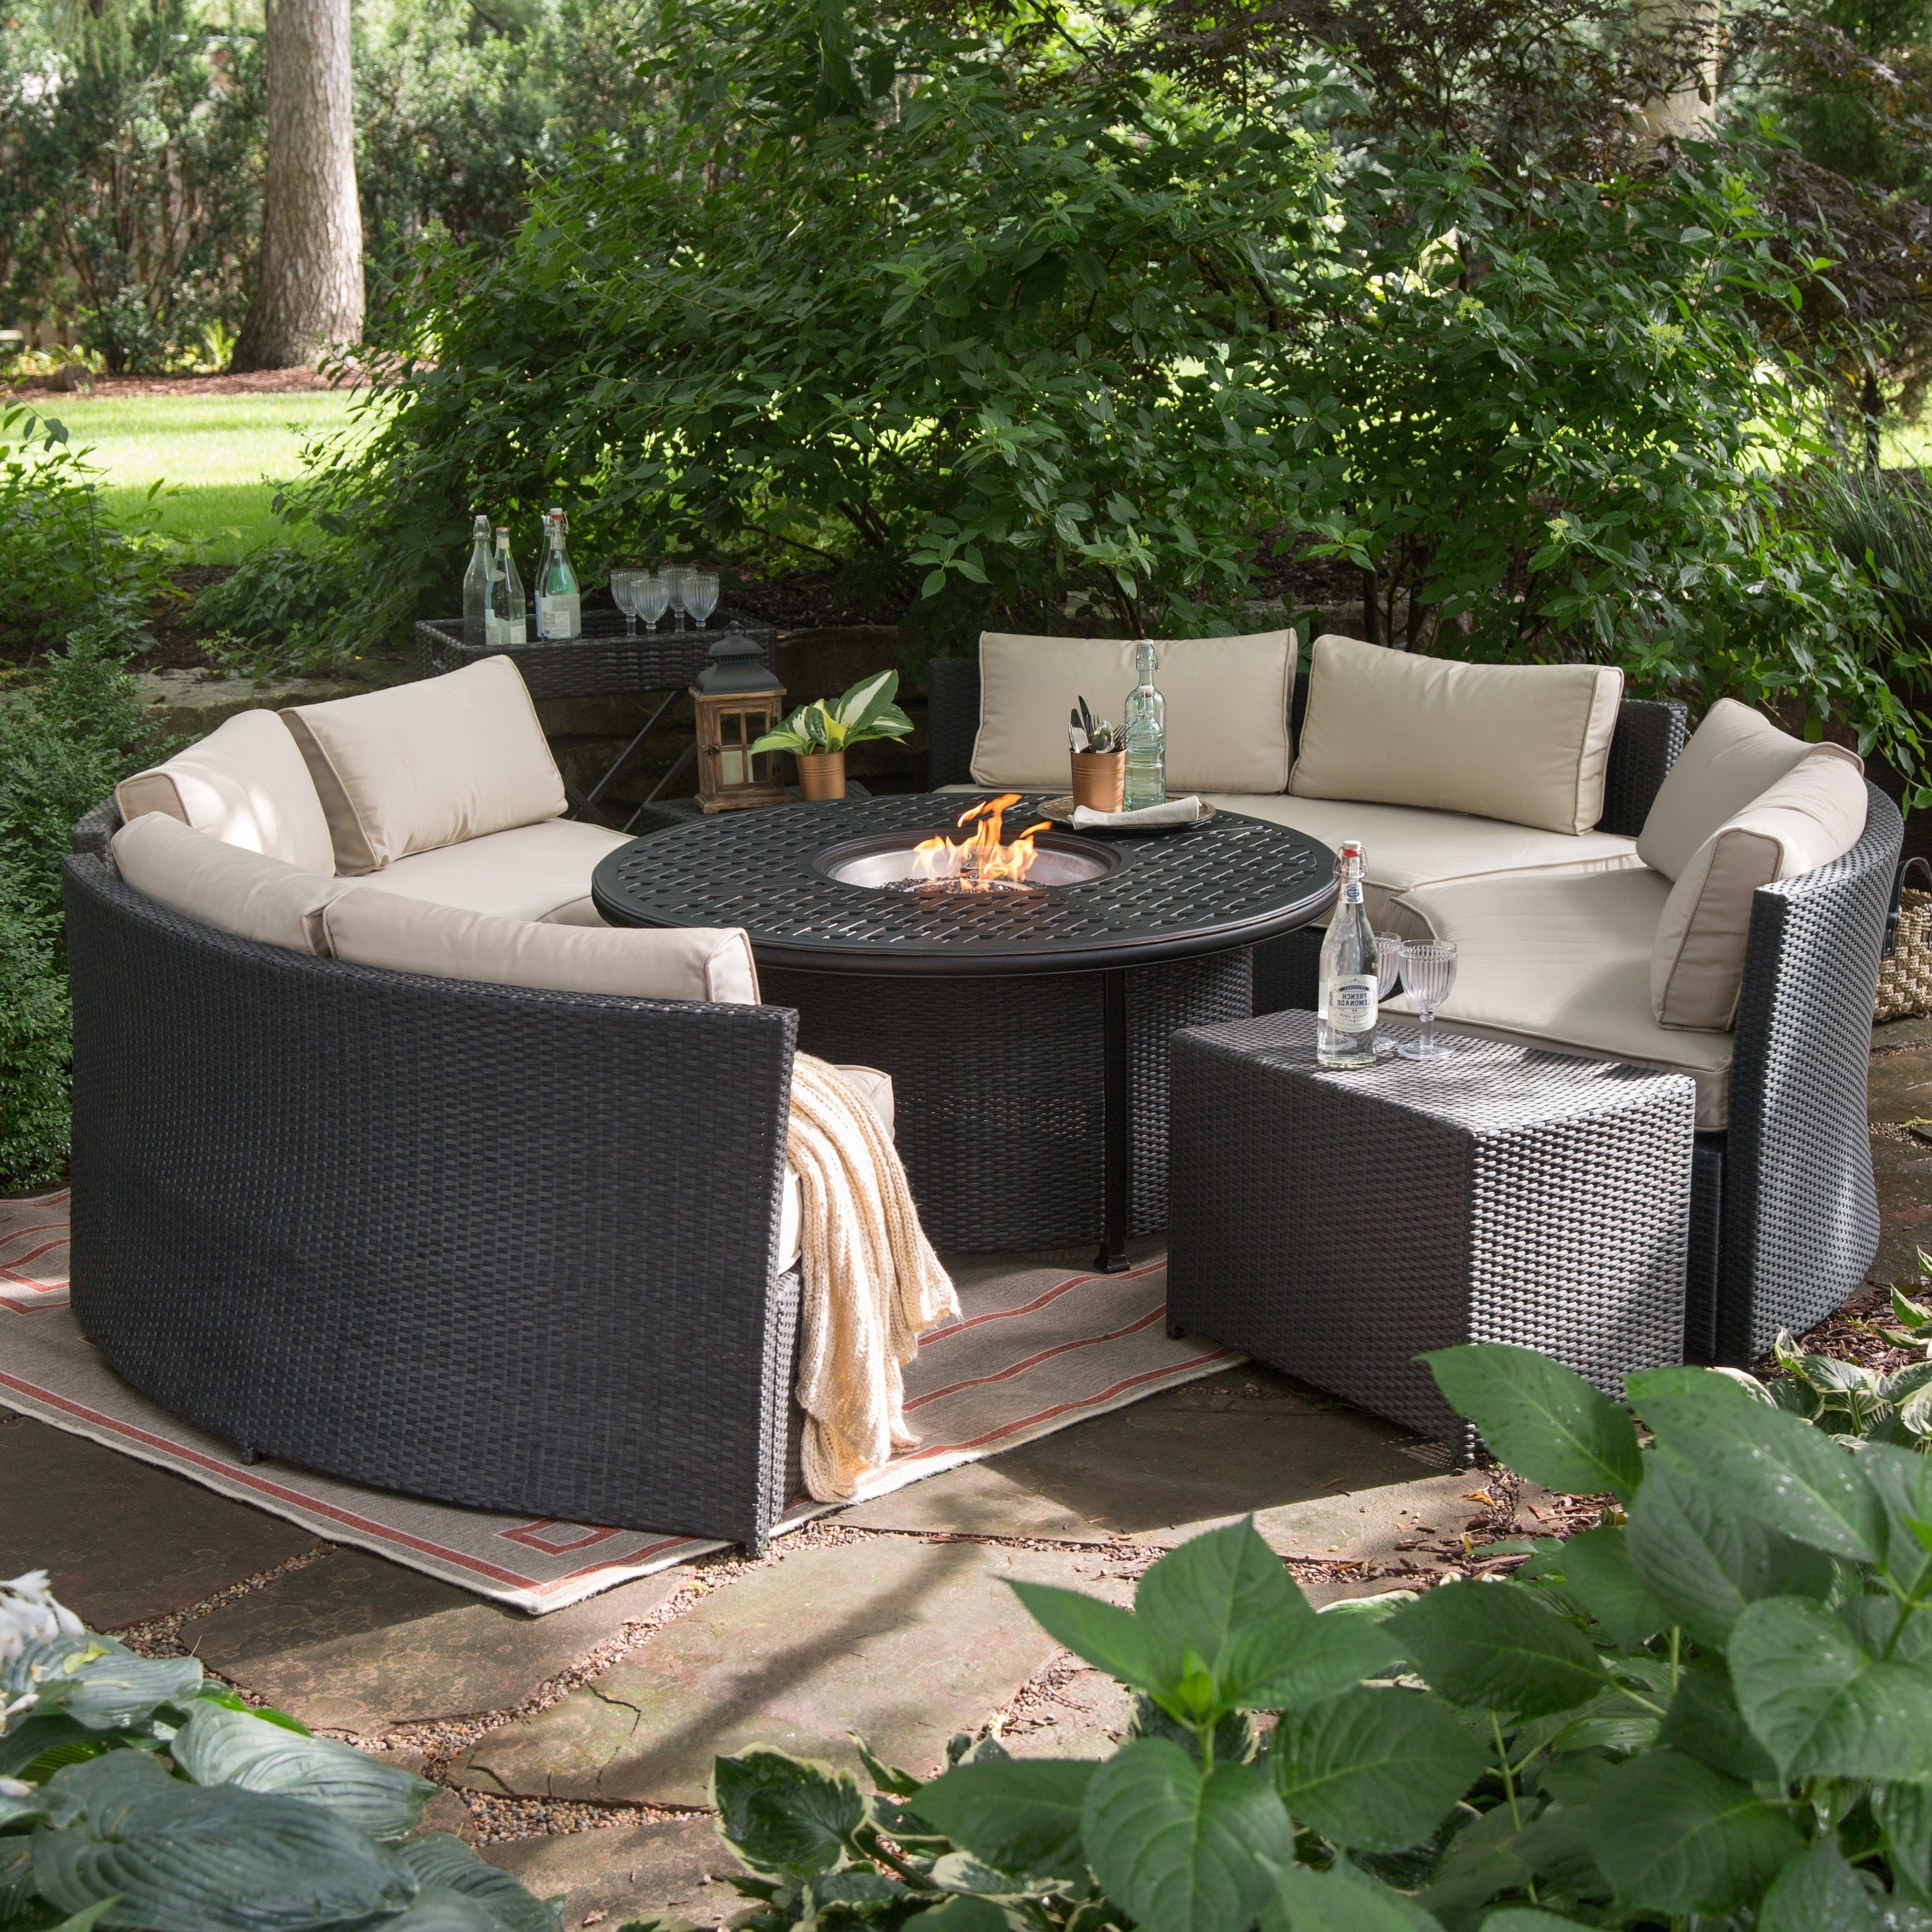 Patio Conversation Sets With Propane Fire Pit Inside 2018 Luxury Fire Pit Set Propane Fire Pit Sets Outdoor Lounge Furniture (View 16 of 20)